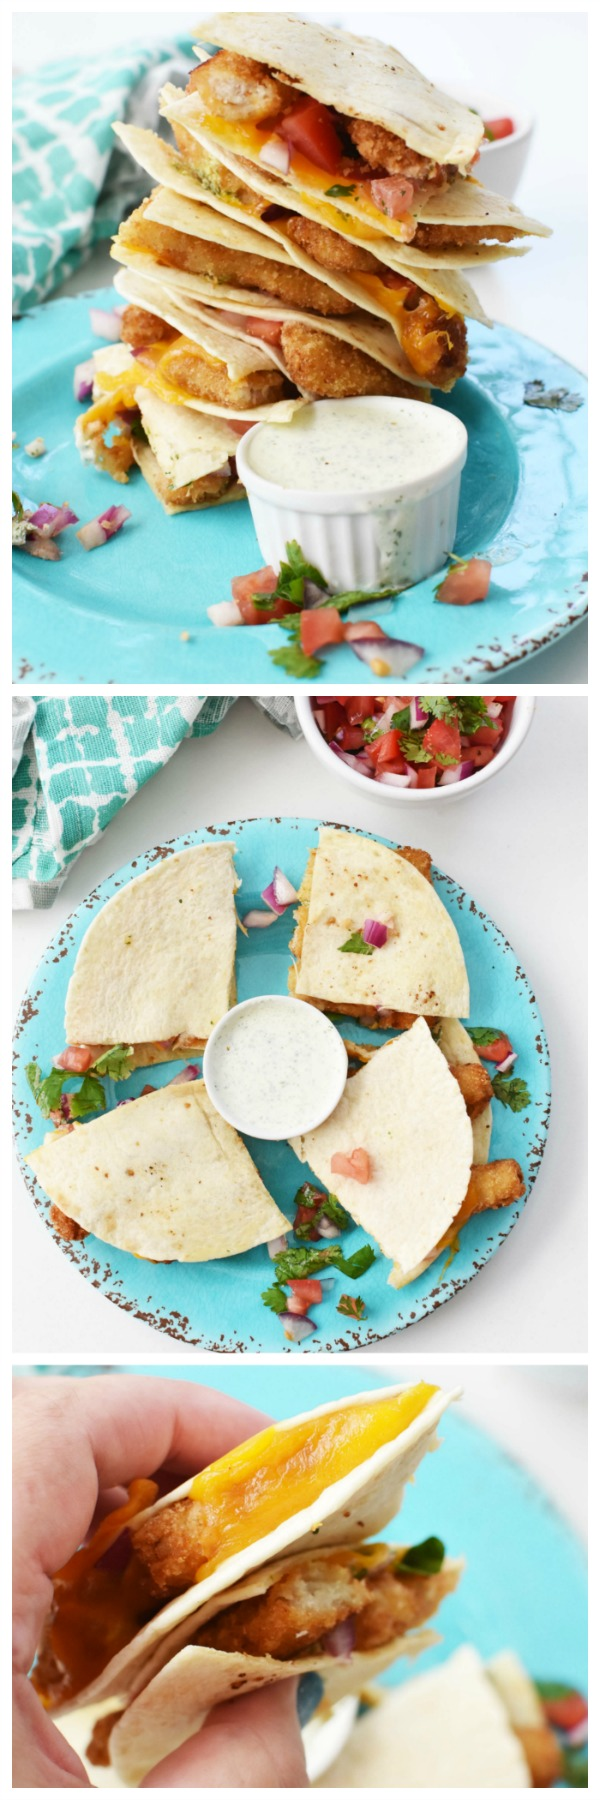 Cheesy Fish Quesadillas with Salsa Cilantro Lime Sauce- An easy to make lunch or dinner featuring flour tortillas stuffed with crunchy fish sticks enveloped in melted cheddar, fresh salsa, and a cilantro lime sauce.